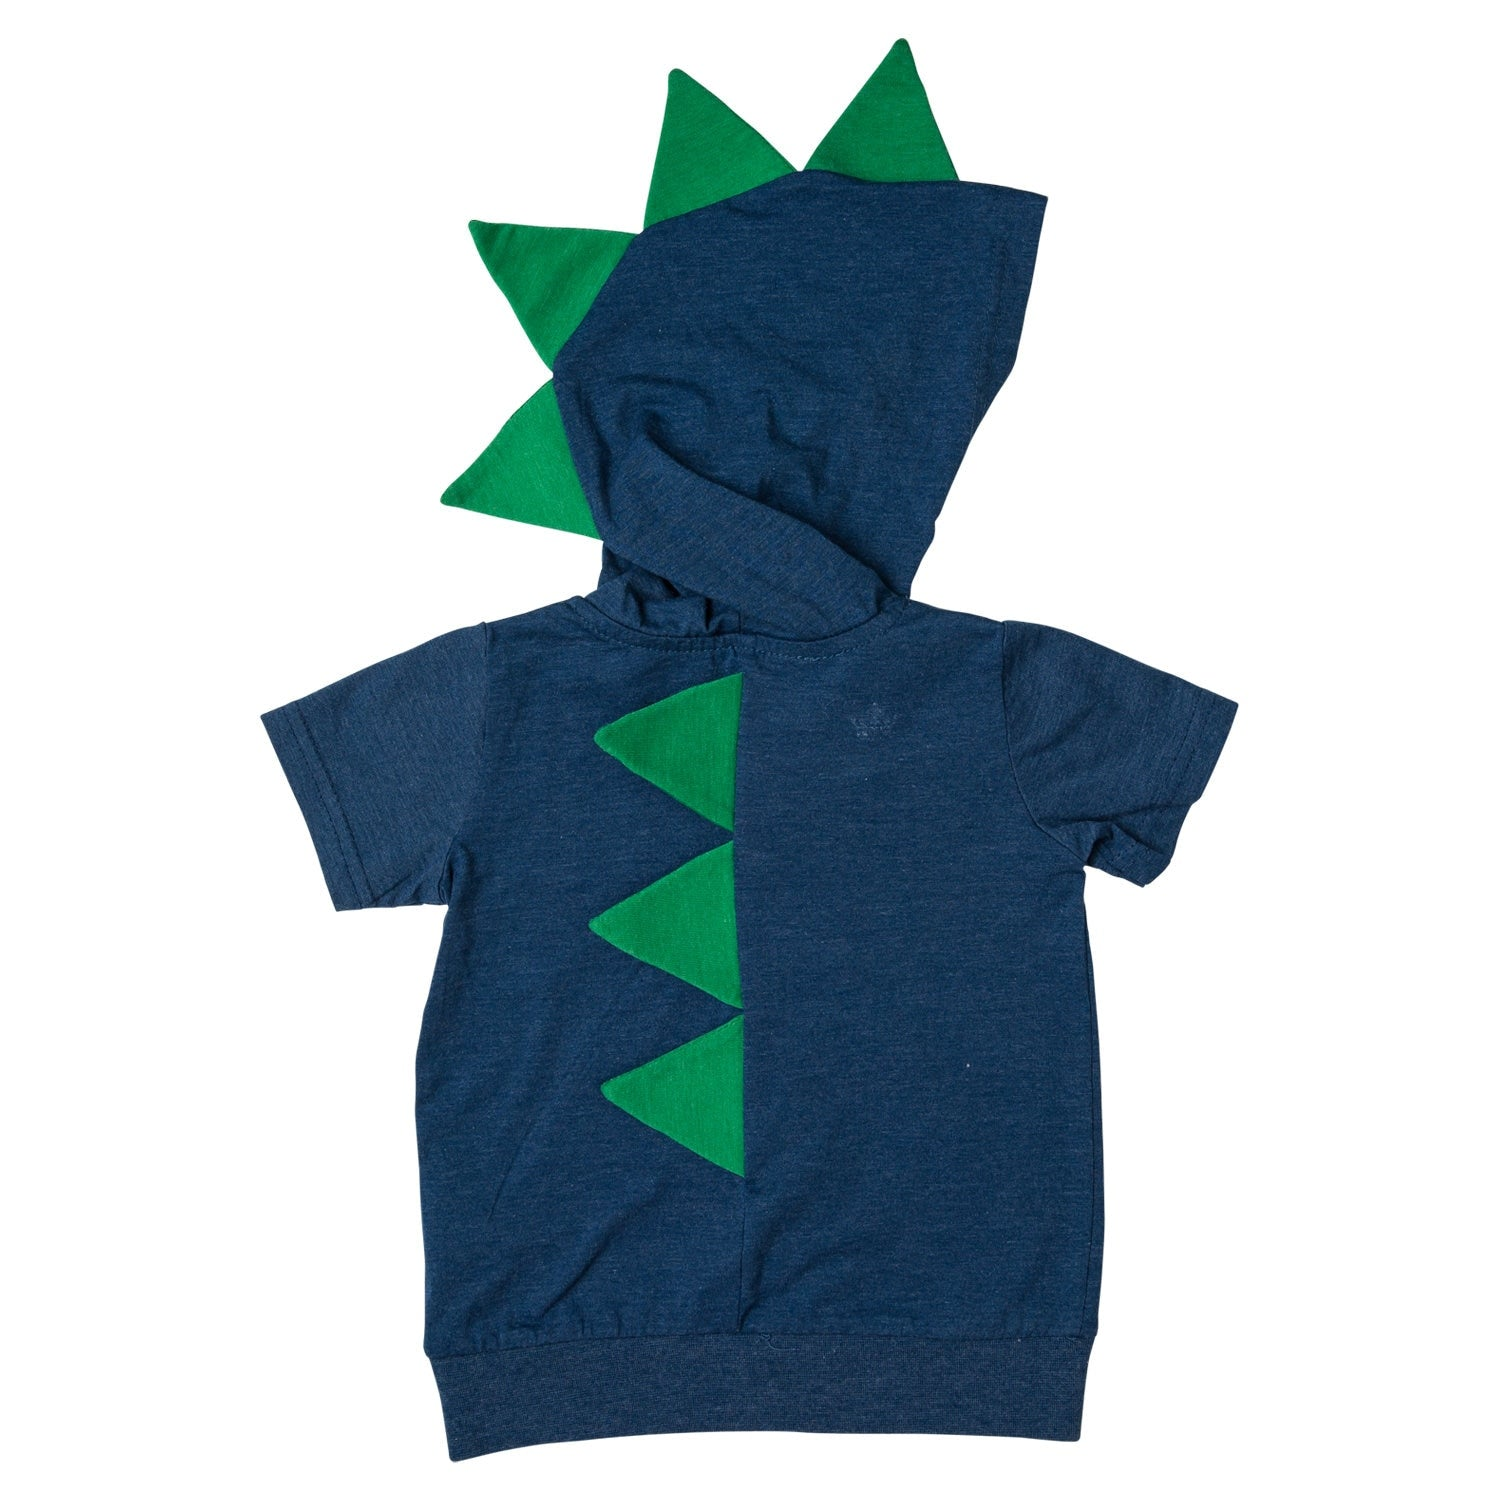 ssdino-nvy-navy-green-short-sleeve-dino-hoodie-back.jpg